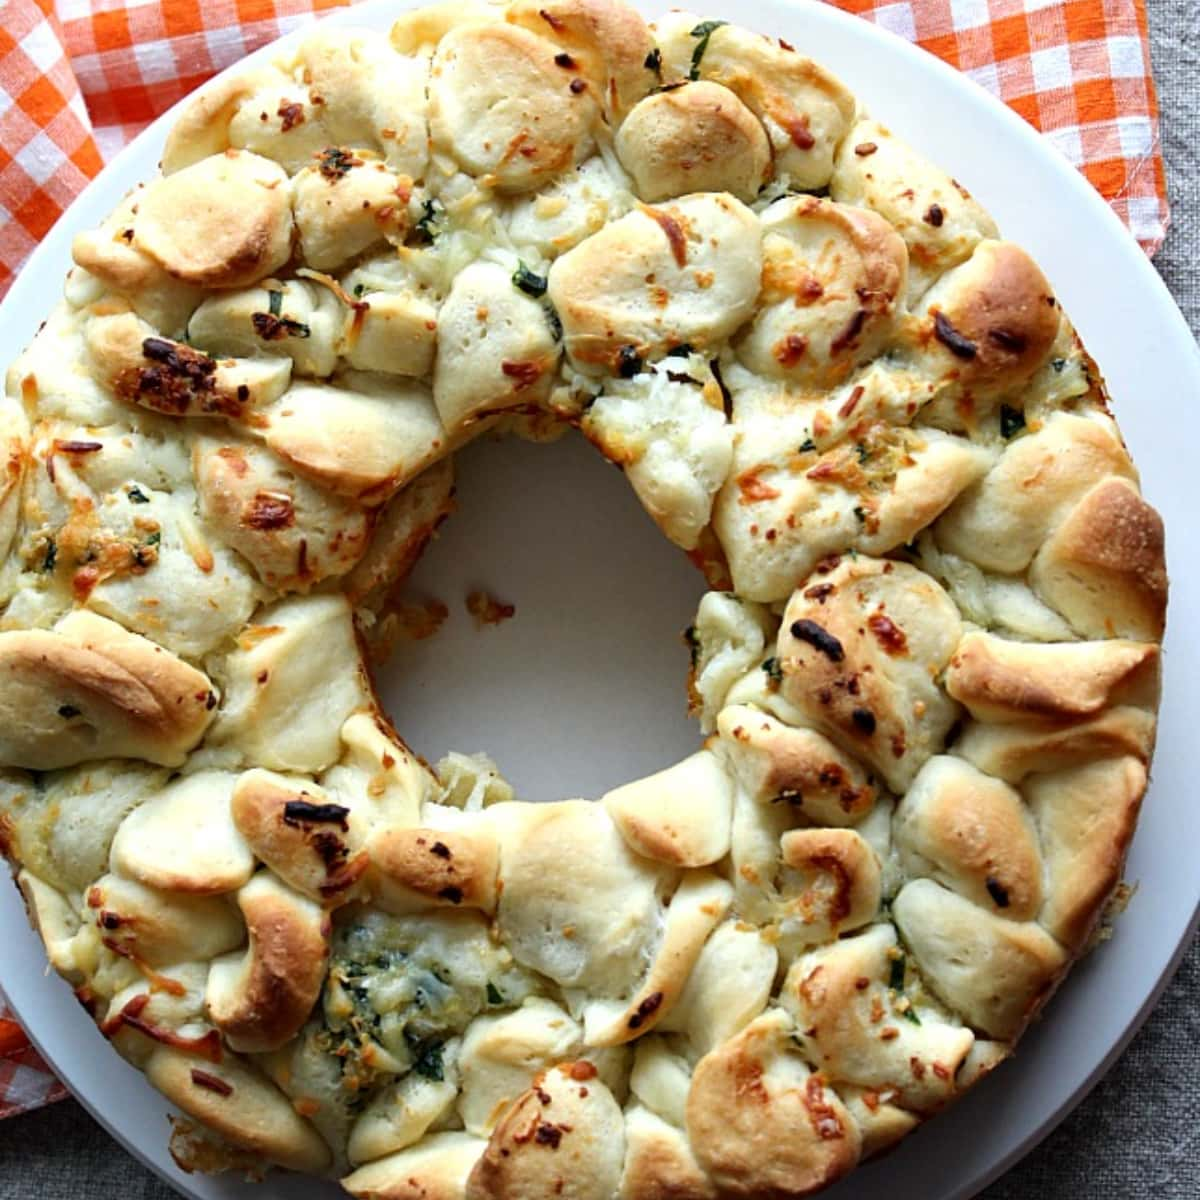 Baked circle of pull apart style bread on a white and red plate